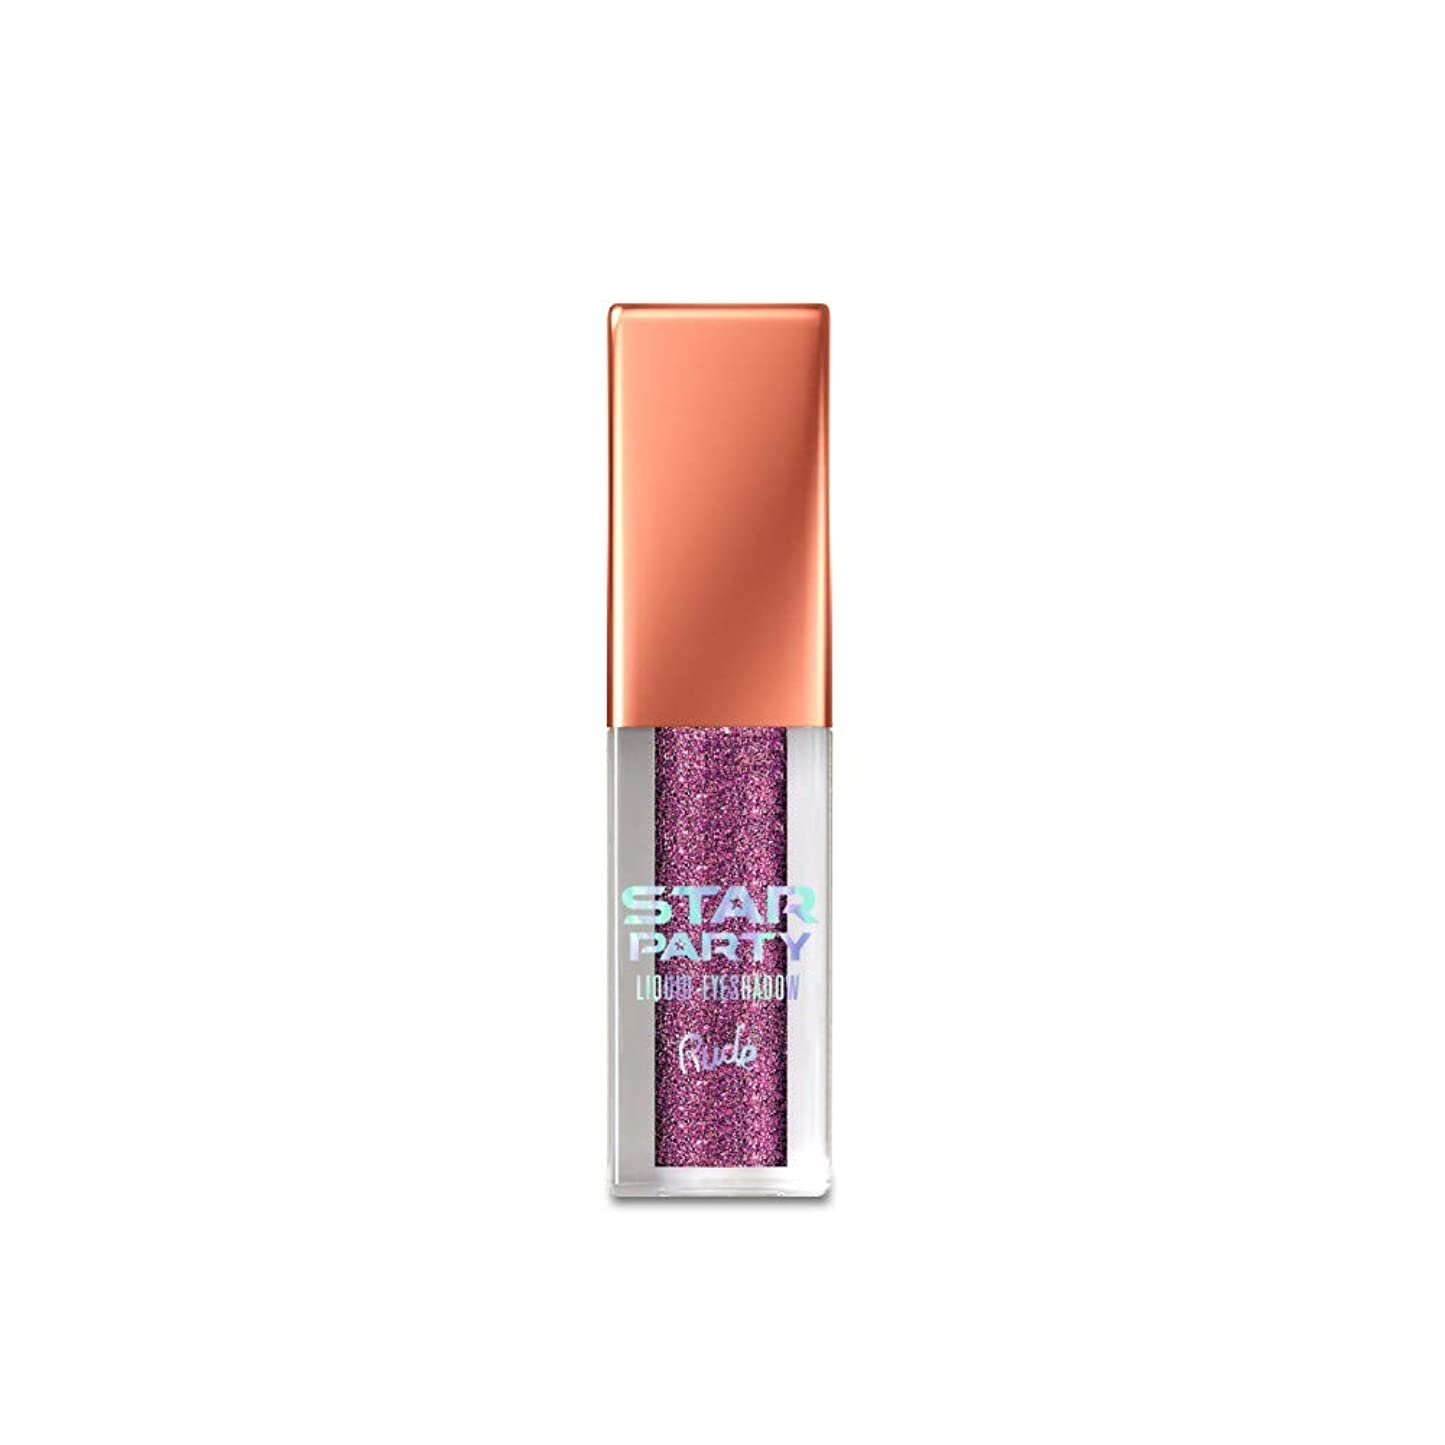 解任そんなに漂流(6 Pack) RUDE Star Party Liquid Eyeshadow - She's a Star (並行輸入品)